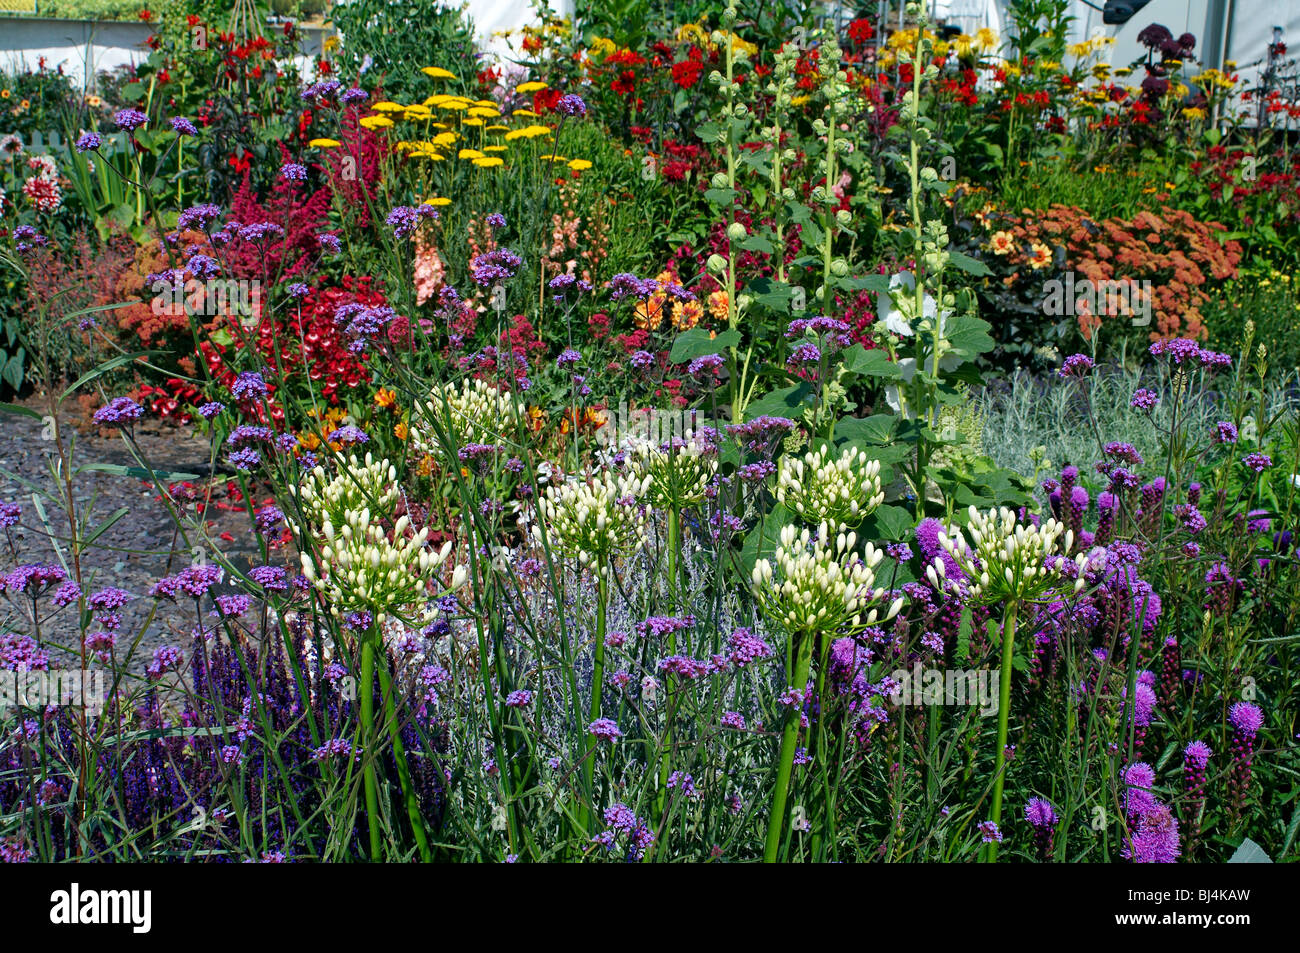 A Colourful Herbaceous Flower Border In A English Country